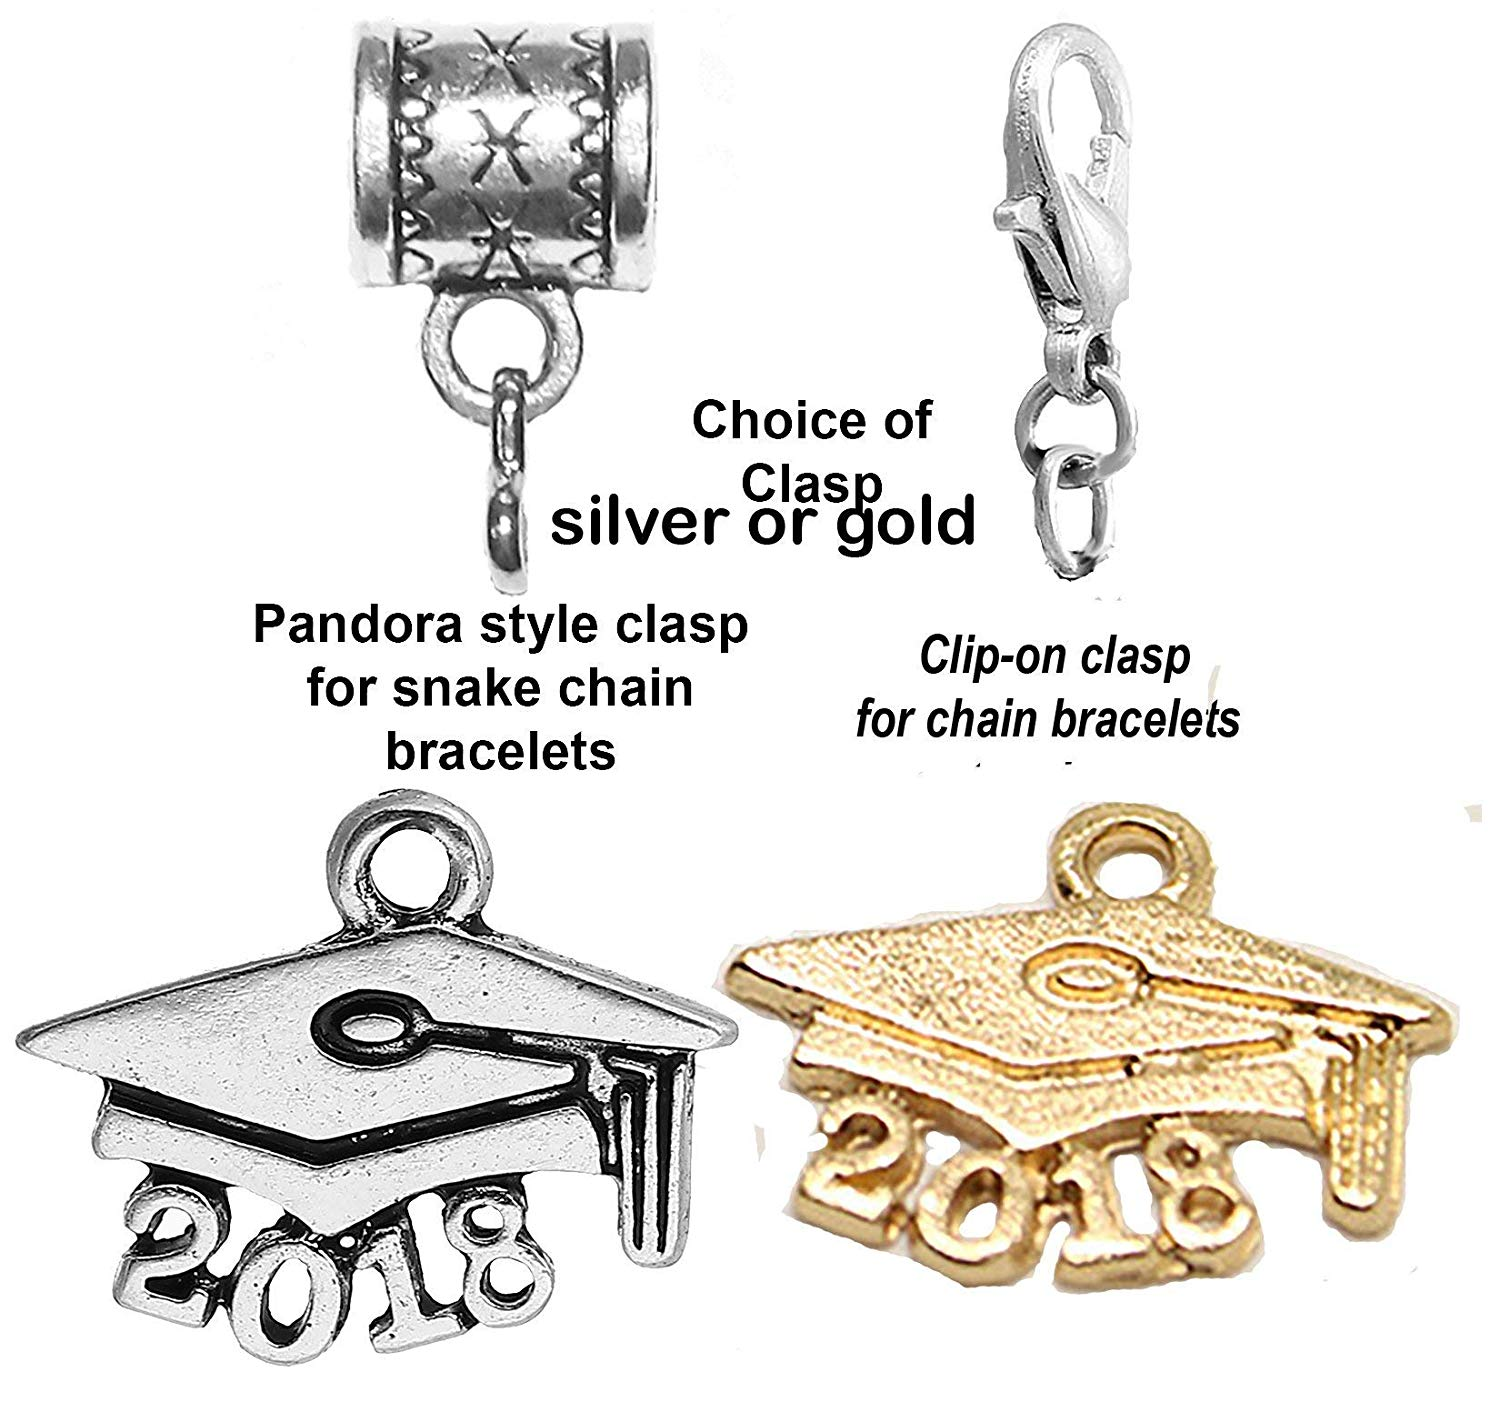 """Mossy Cabin""""Graduate 2018 charm"""" hanging charm for large hole style snake chain charm bracelets, neck chains or key chains. Choice of silver or gold and choice of clasp"""